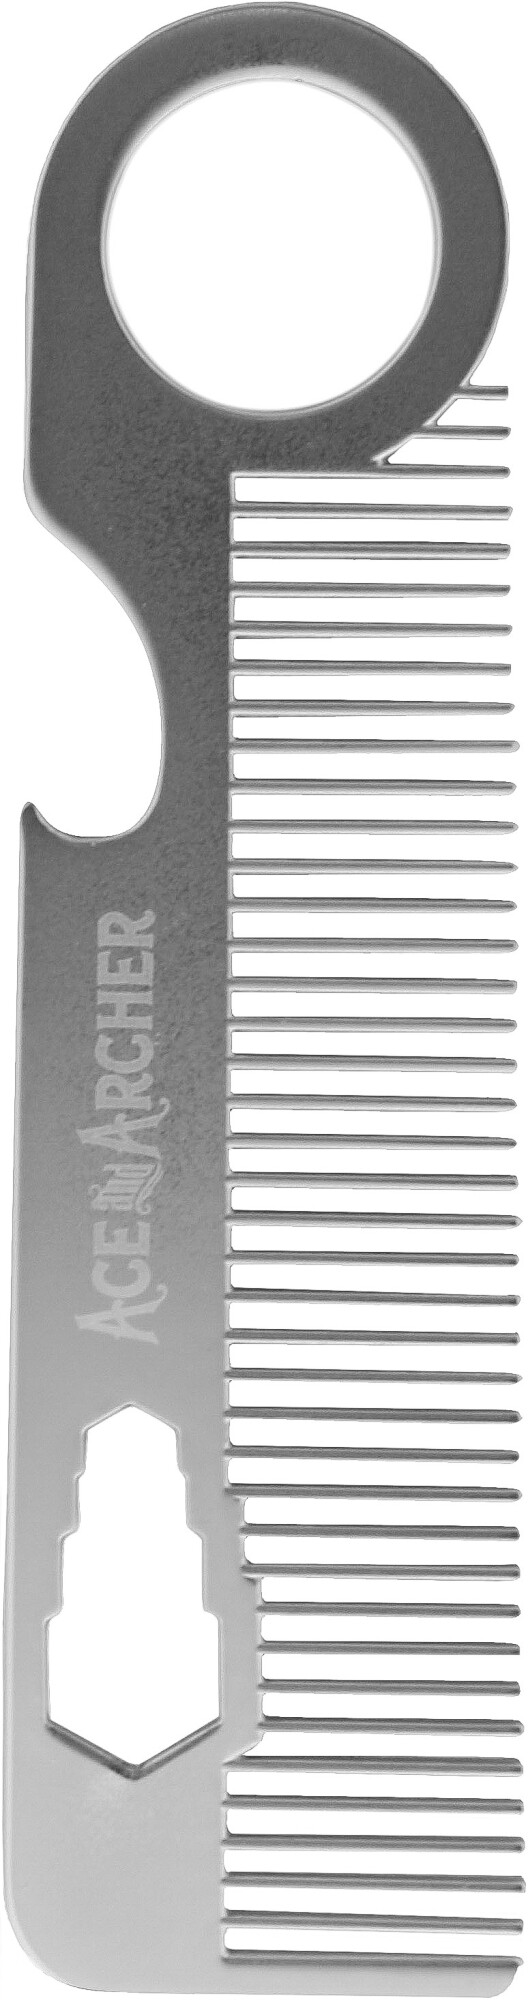 Beard Comb with Bottle Opener. All Metal, Classic Style Grooming Tool - Silver